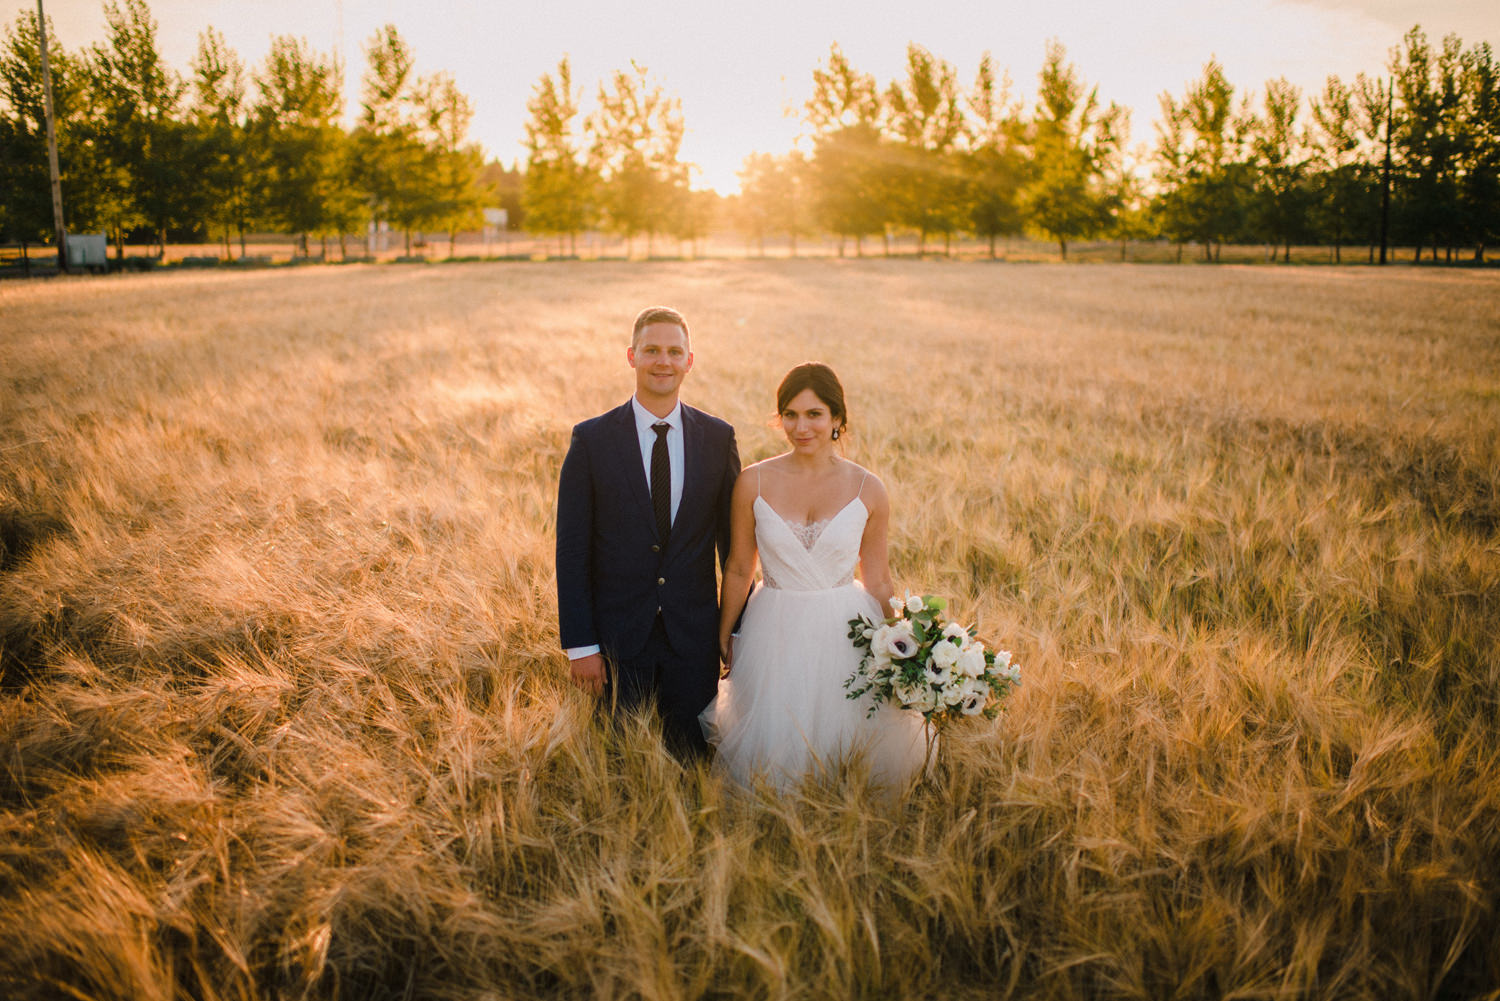 204-woodland-farm-meadow-wedding-by-best-seattle-film-photographer.jpg